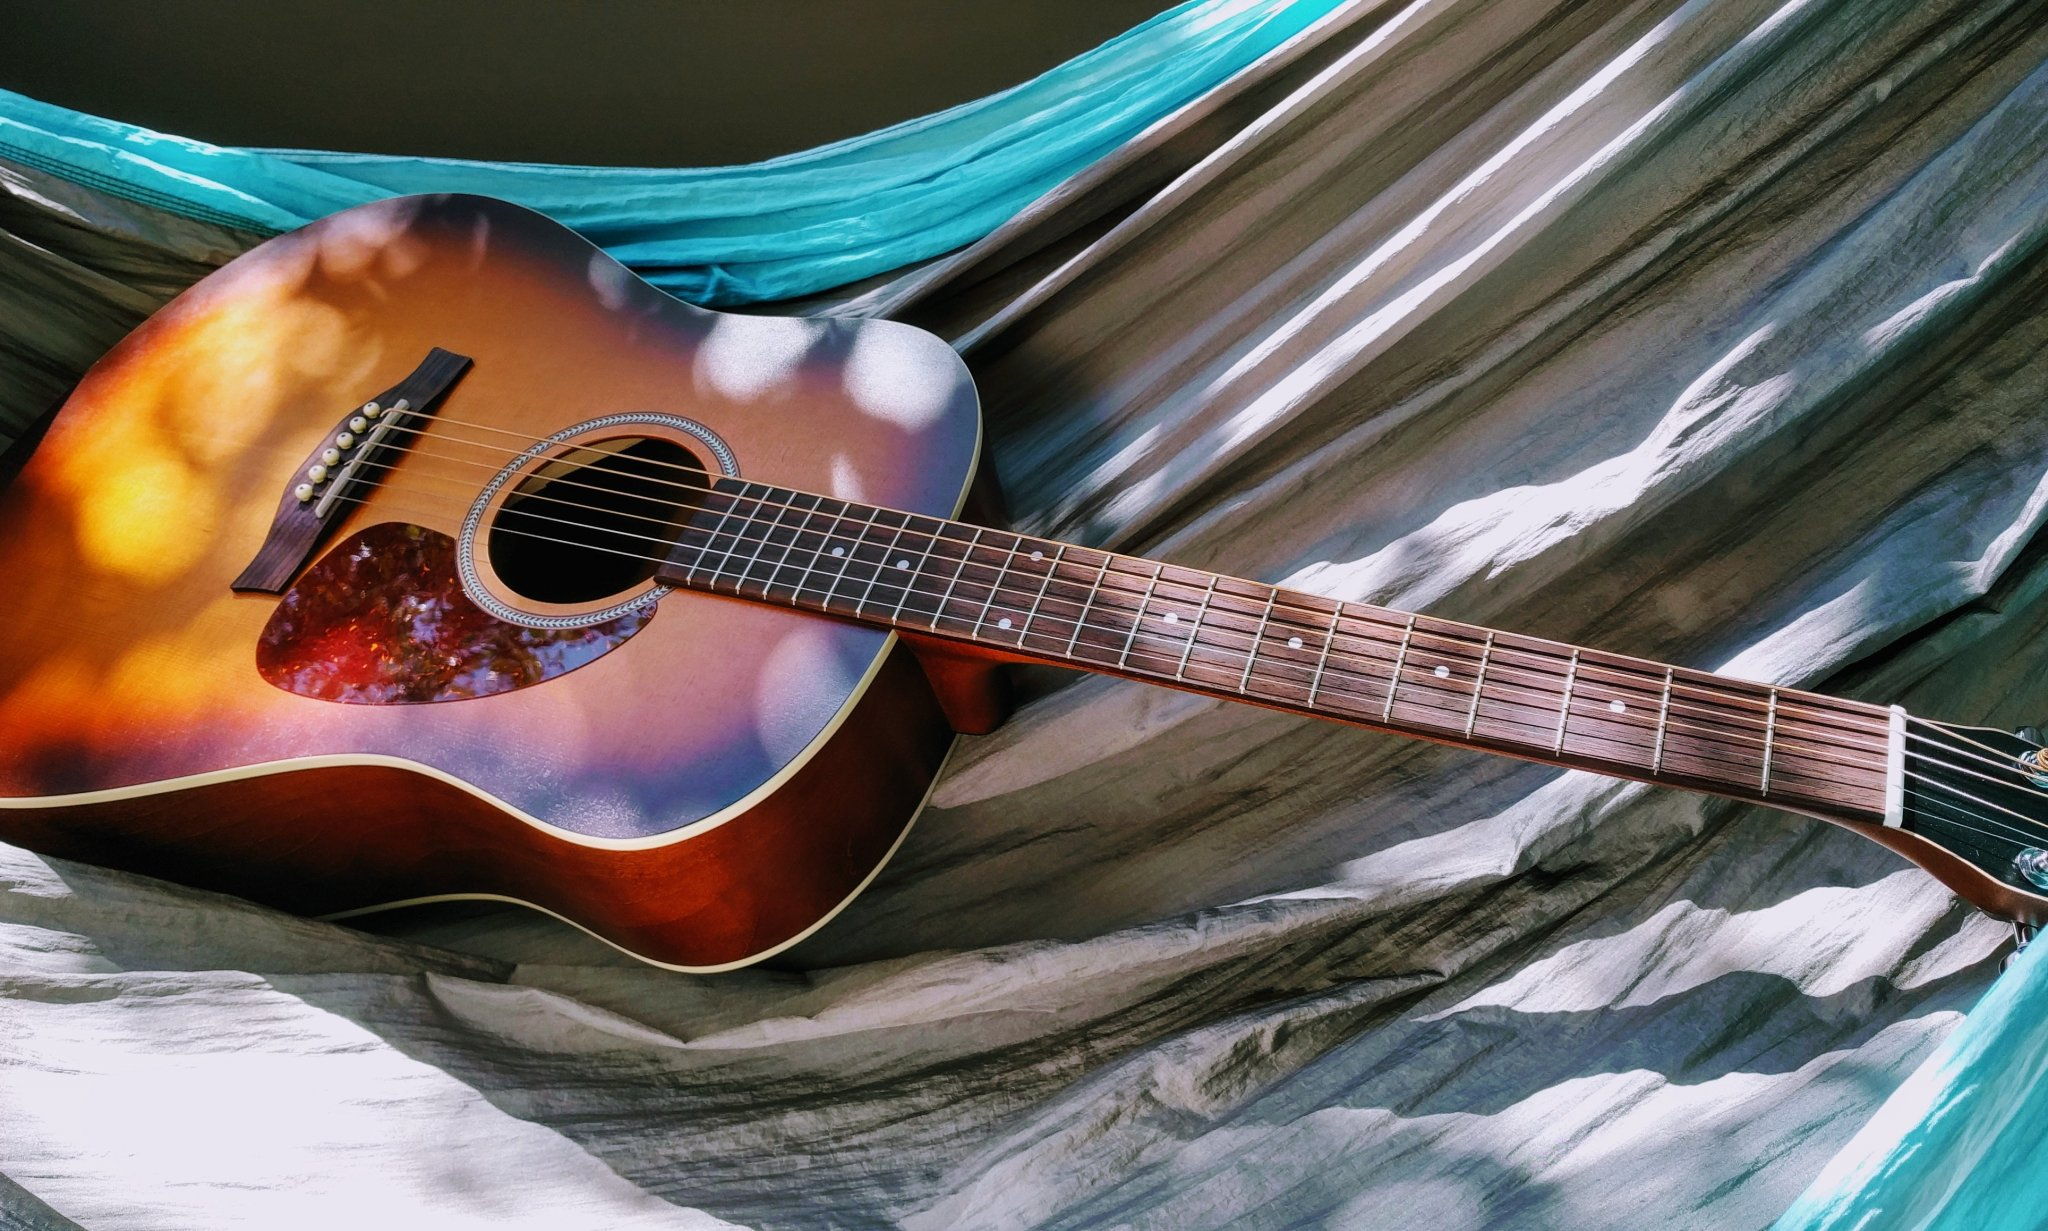 Image of a guitar laying on a blanket